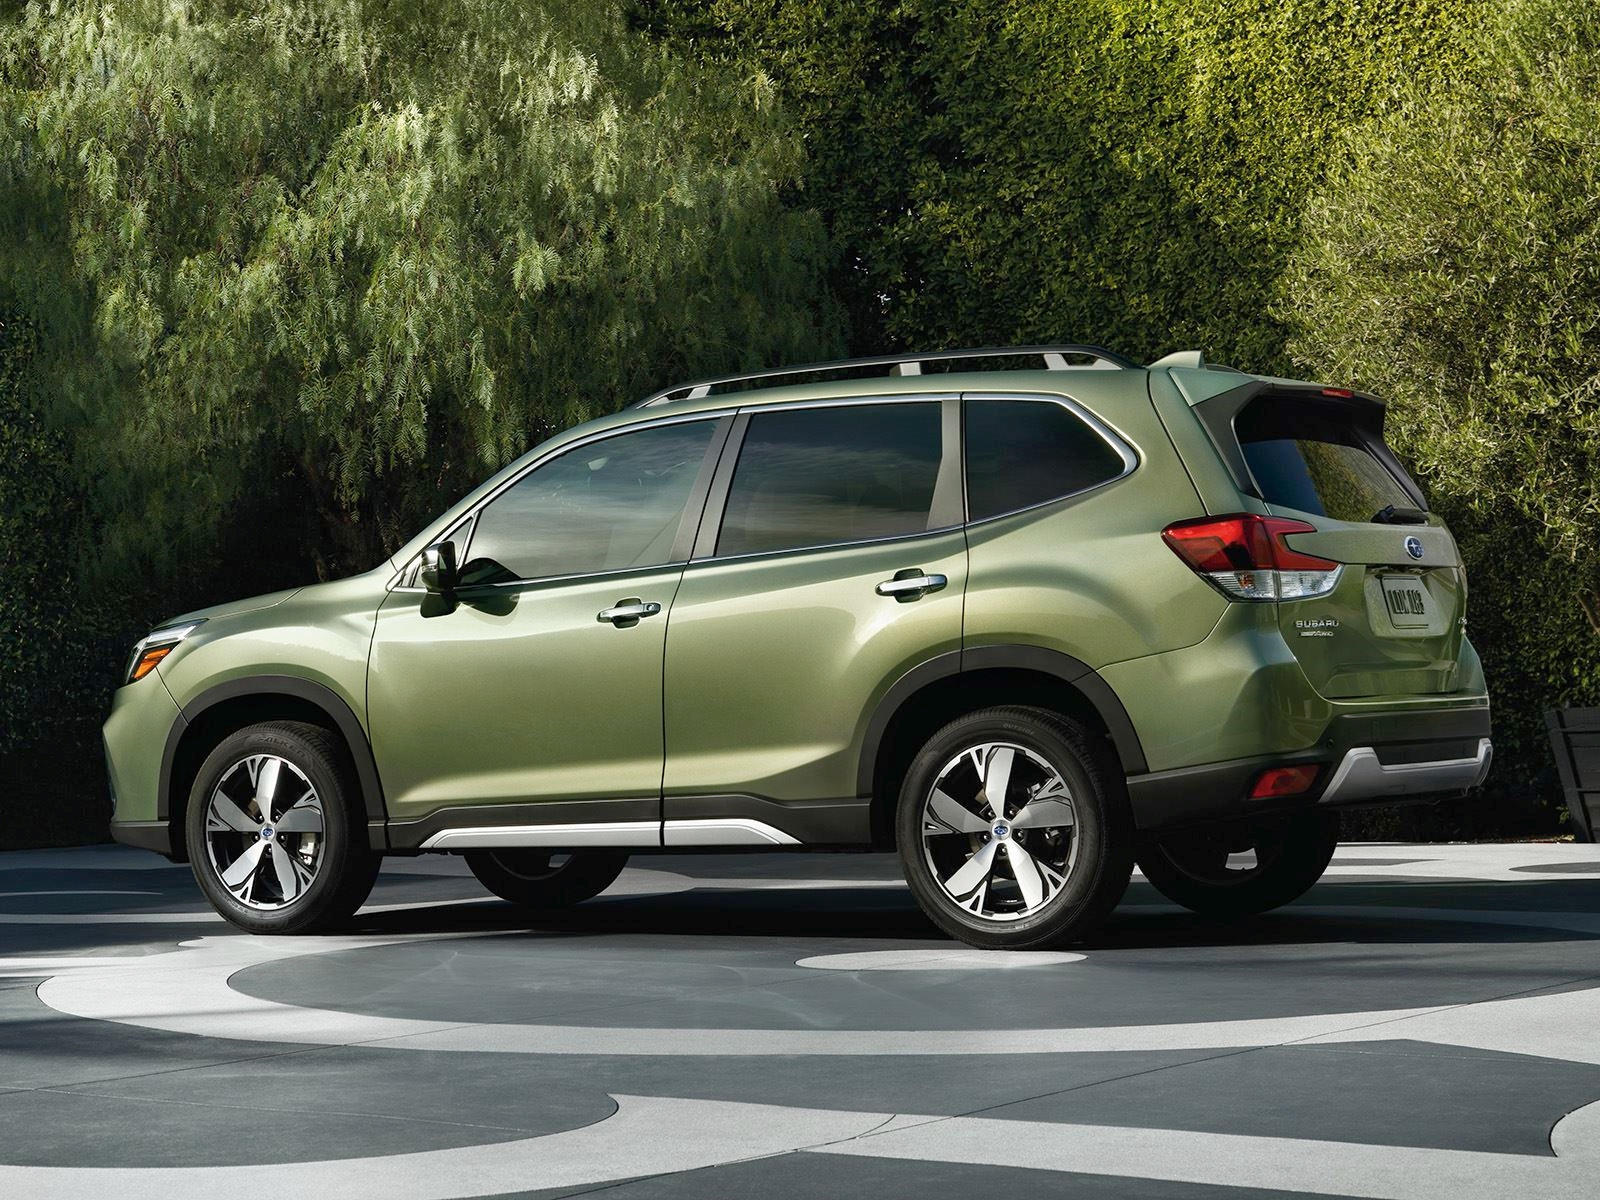 020 Subaru Forester Crossover Side View